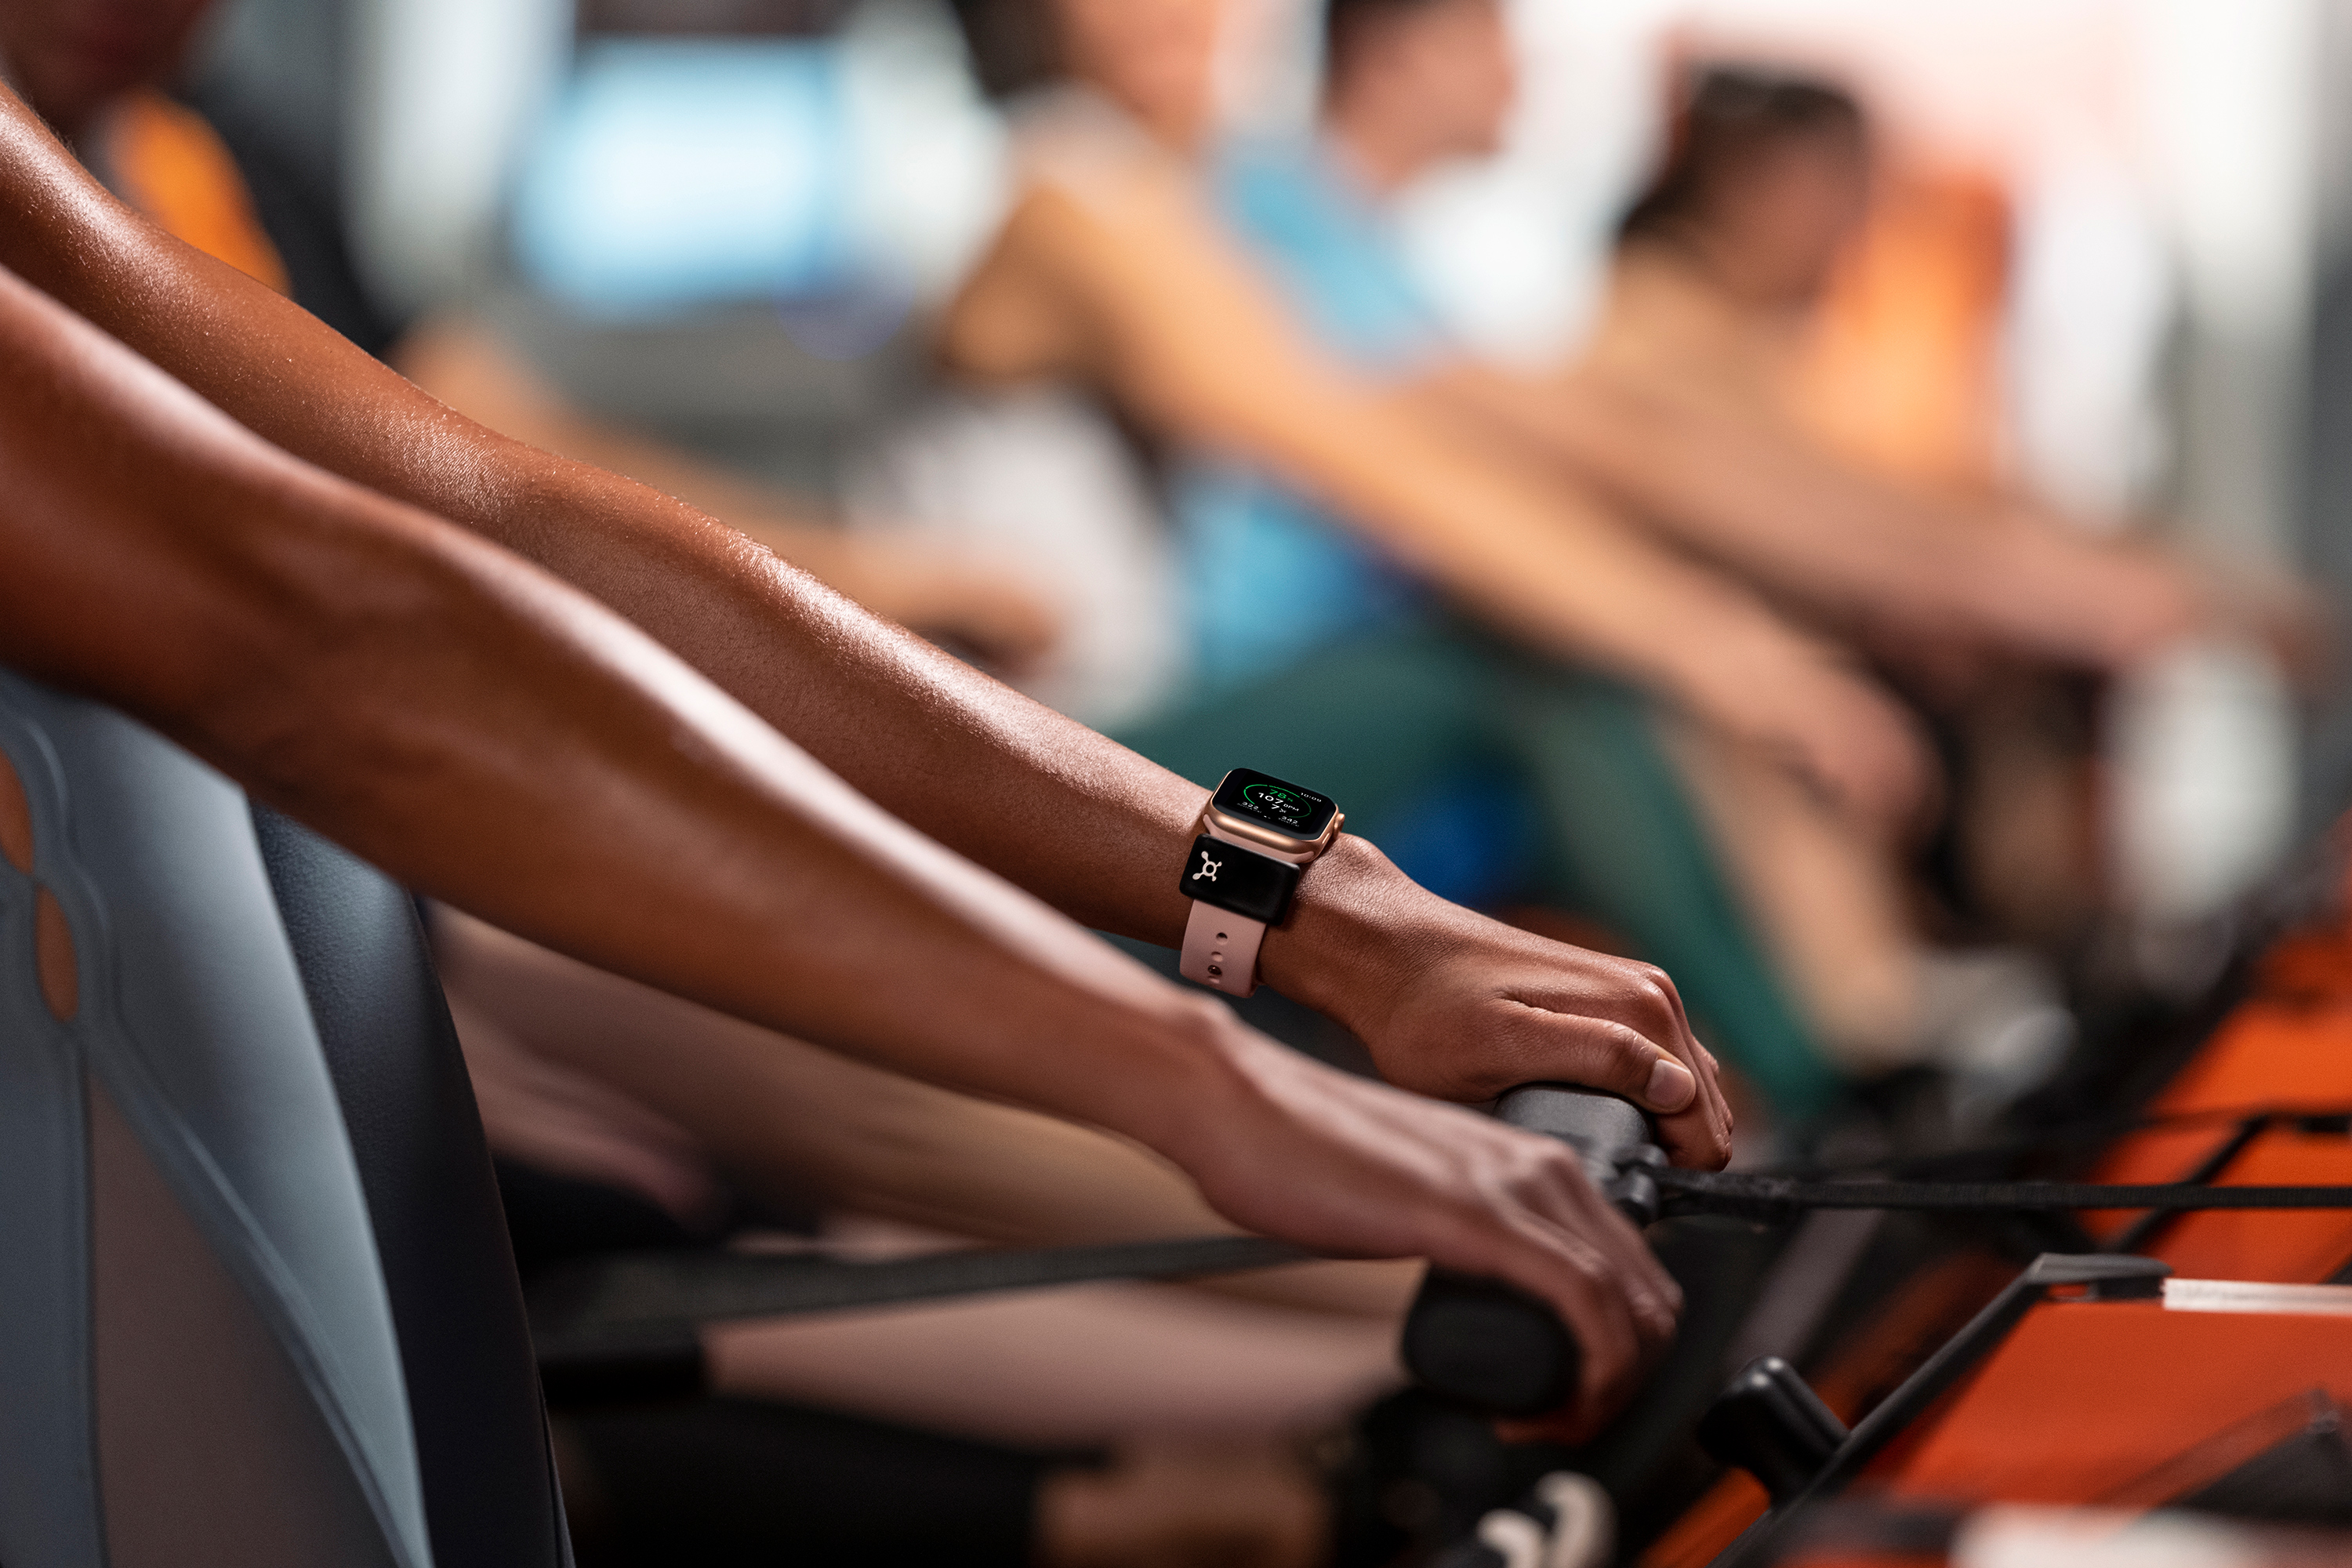 Your Apple Watch can offer you perks thanks to your gym membership